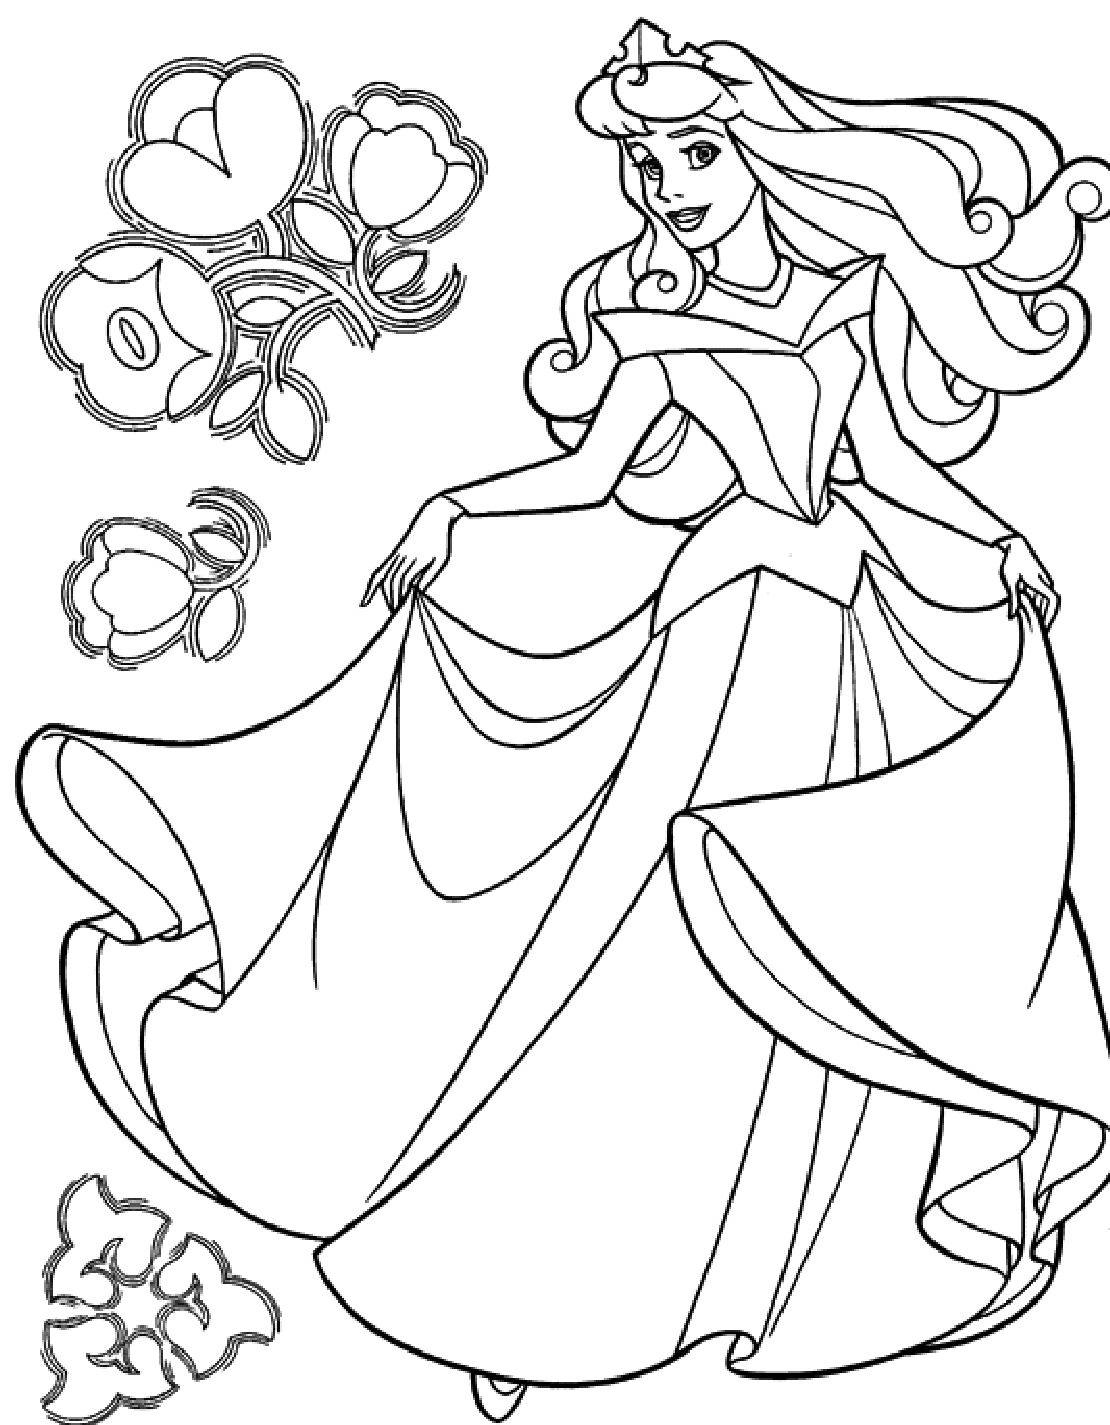 Cindirella Coloring Pages Printable Cindirella Coloring Pages Free Download Of Engaging Line Coloring Pages for Kids 19 Children Elegant Paper to Print